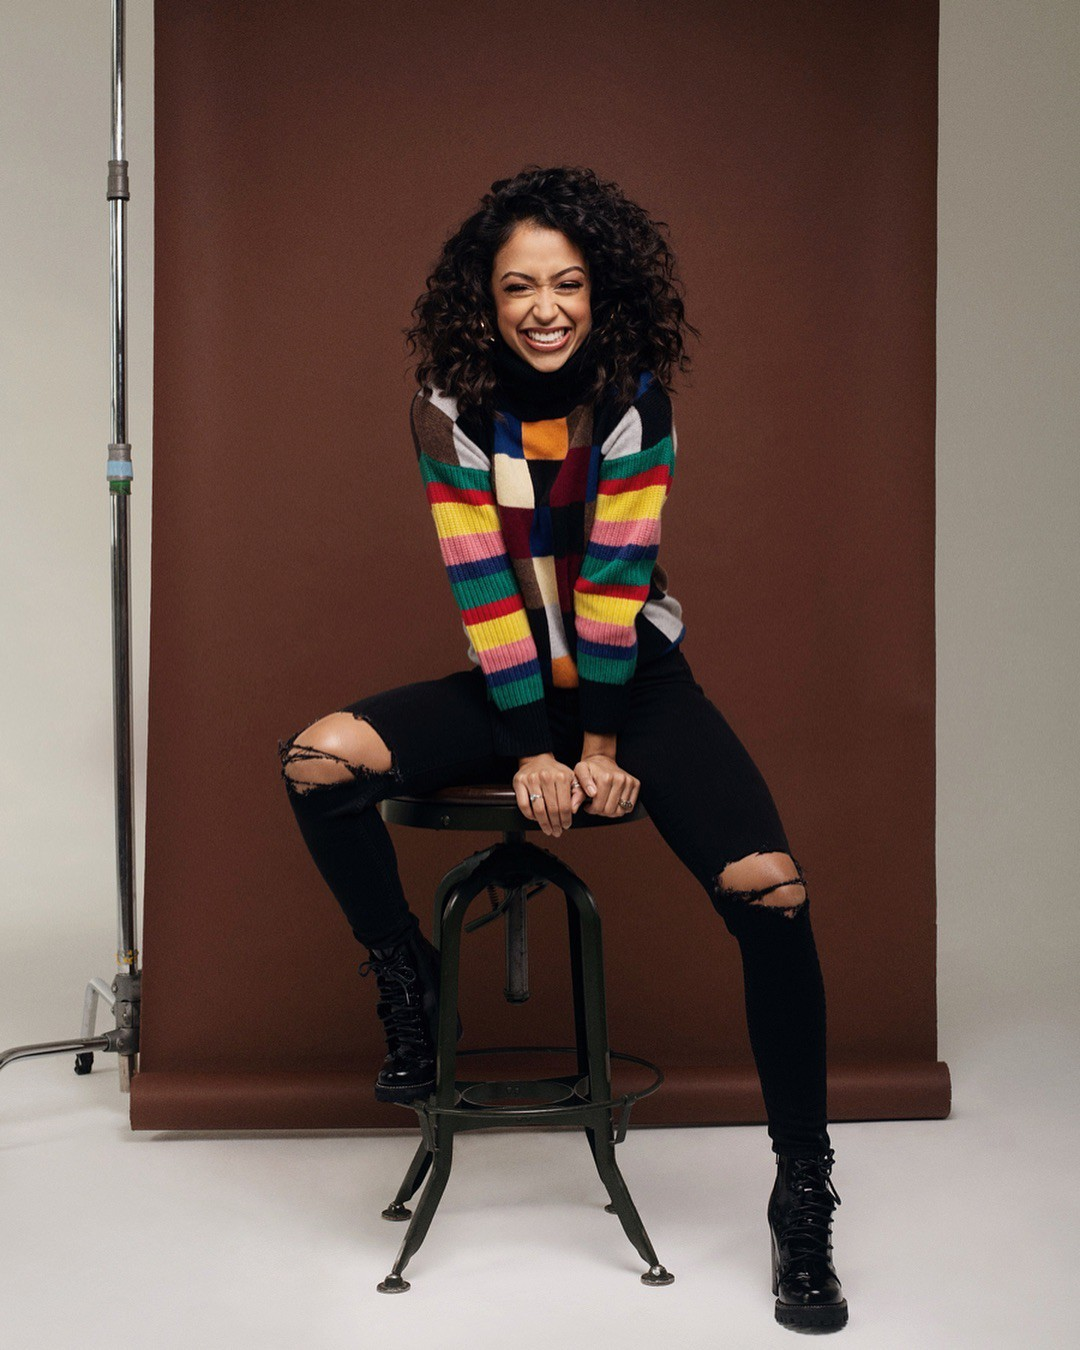 Liza Koshy tights colour outfit ideas 2020, hot girls photoshoot, woman thighs